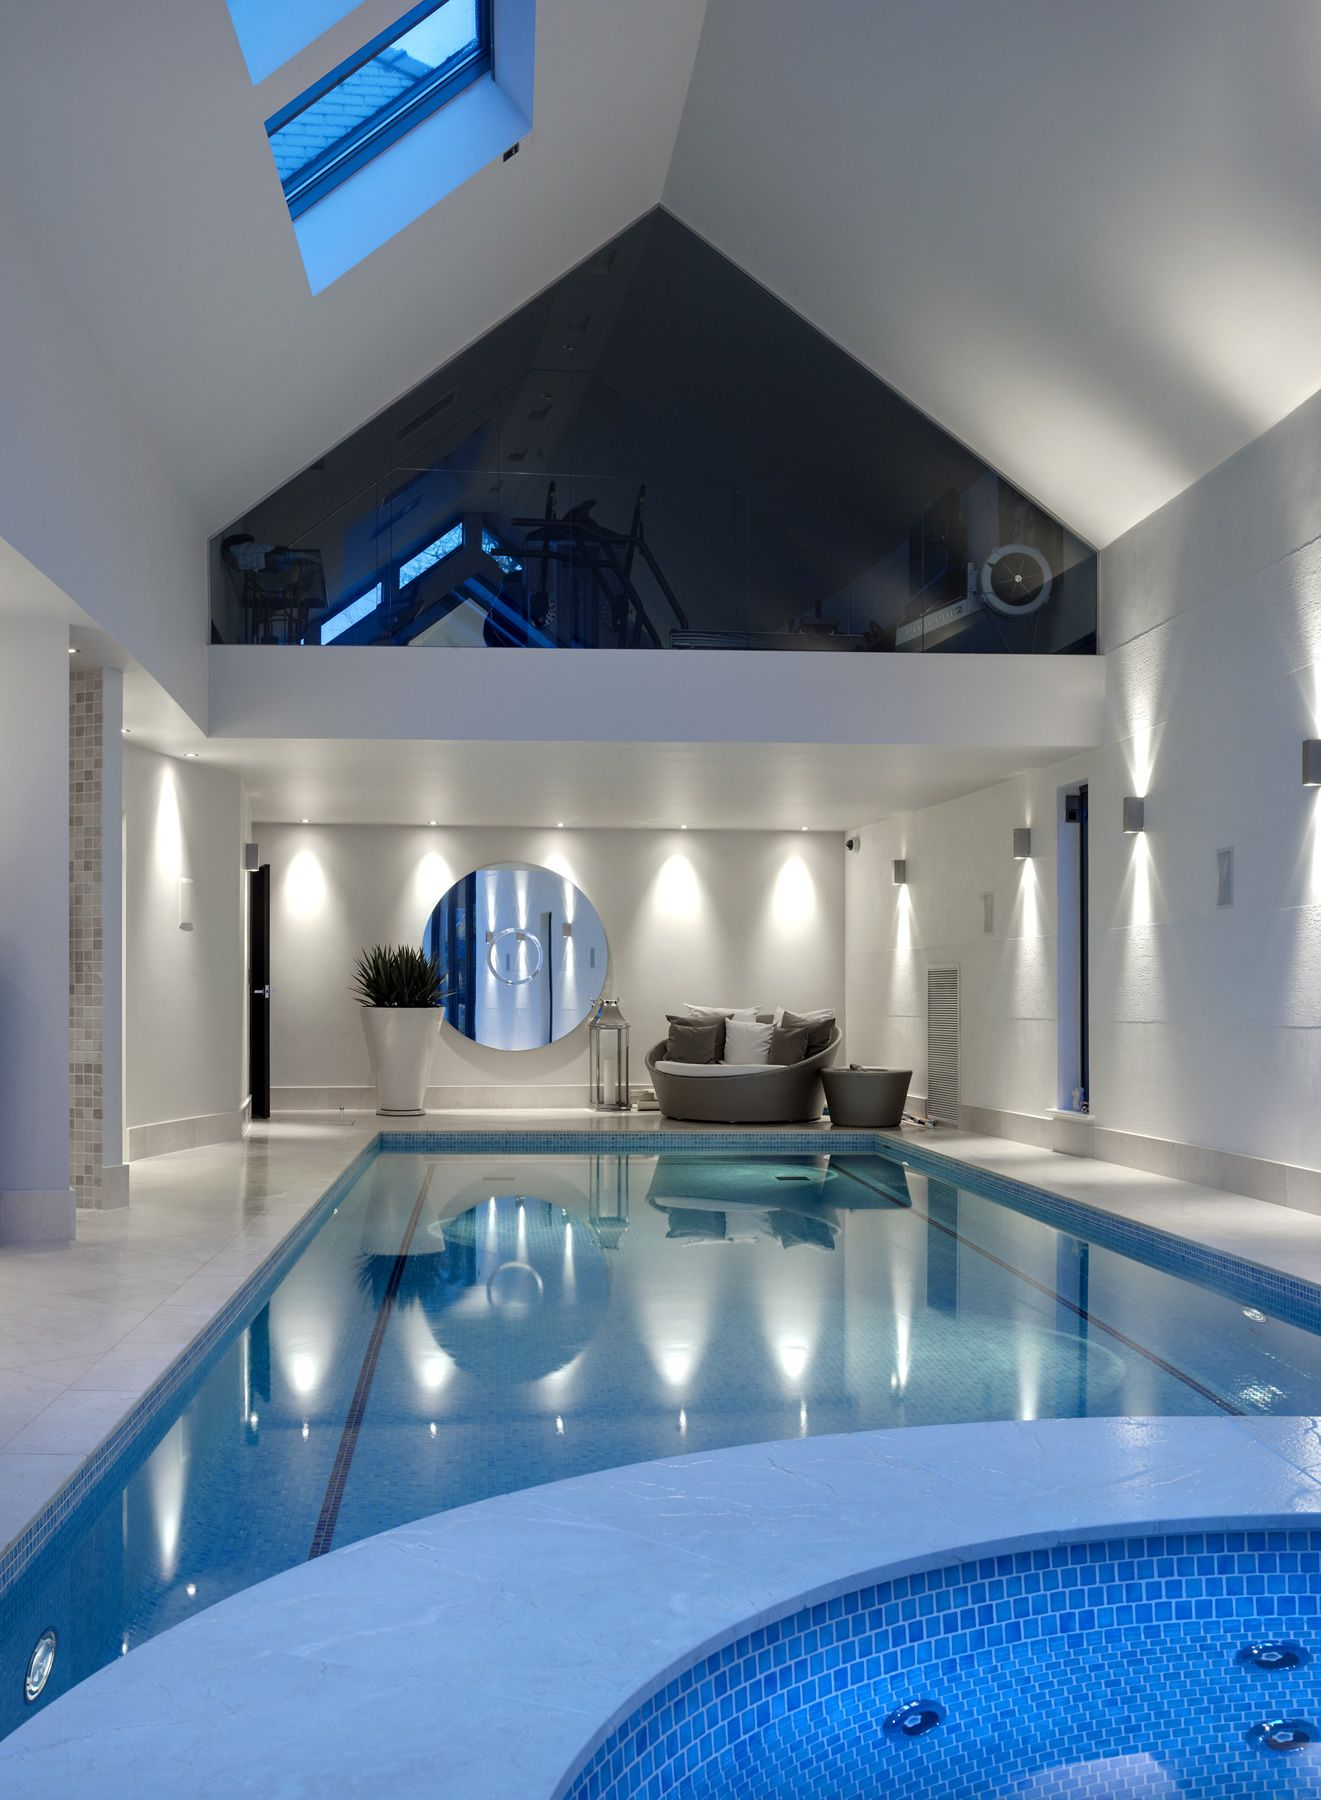 Traum Schlafzimmer Mit Pool And I Will Also Have An Indoor Pool With A Workout Room Above